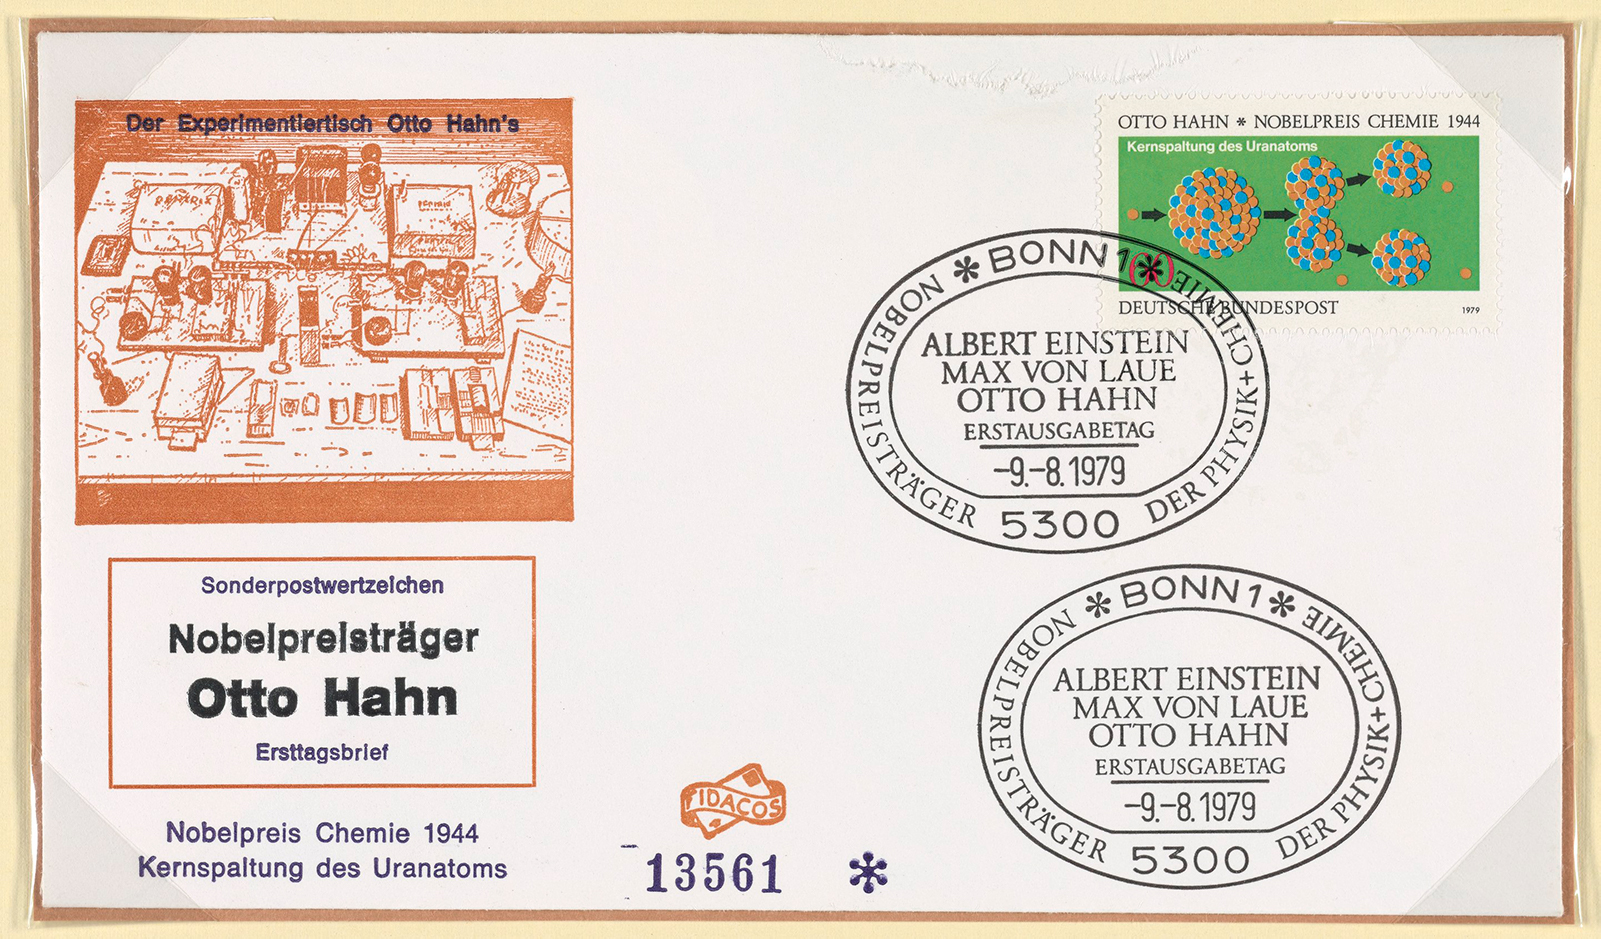 First day cover in German